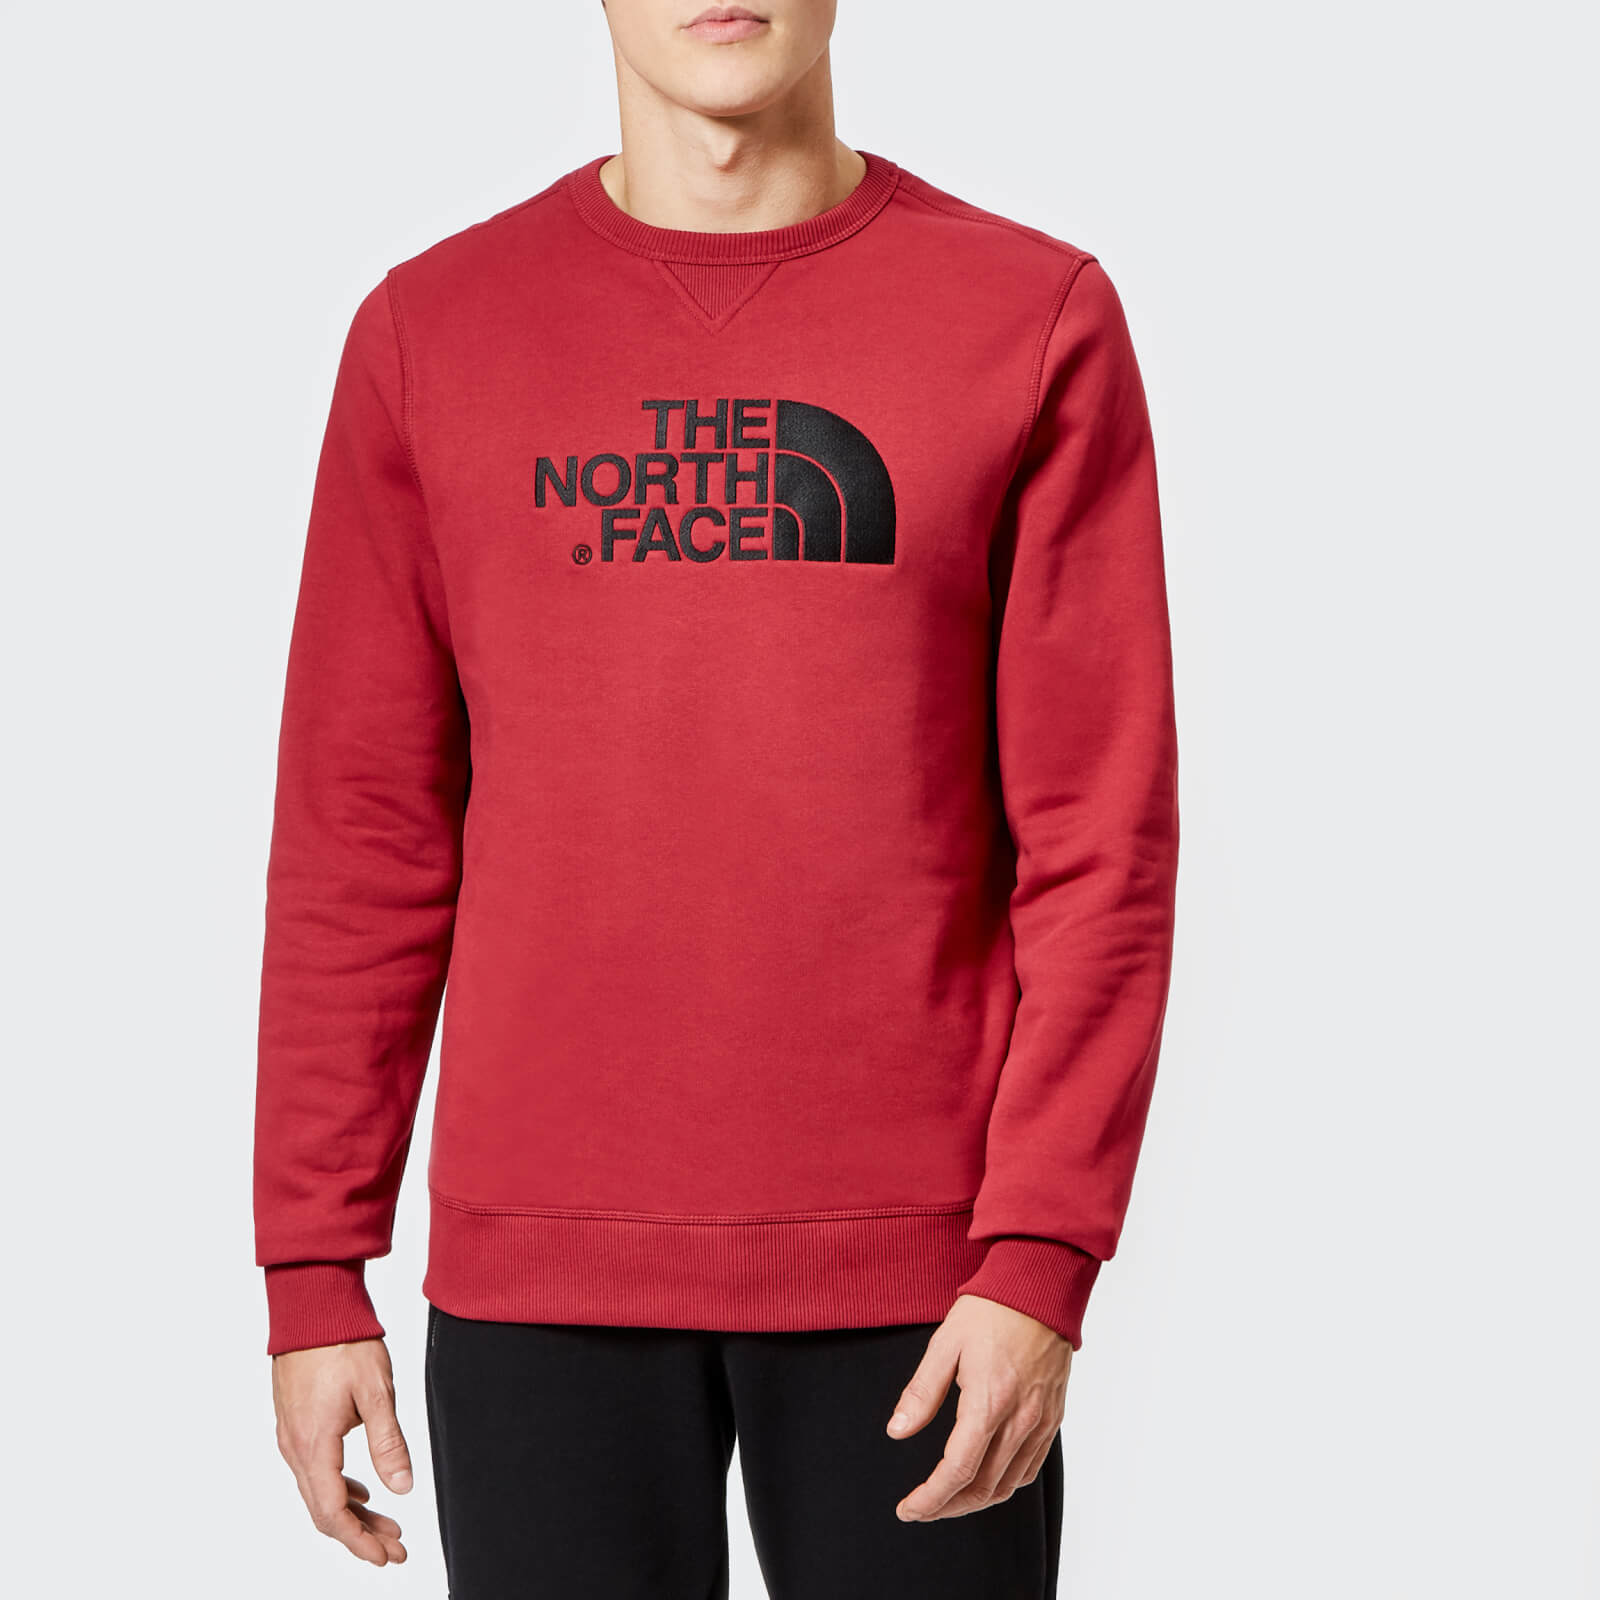 eb296bd8 The North Face Men's Drew Peak Crew Neck Sweatshirt - Rumba Red Mens  Clothing | TheHut.com